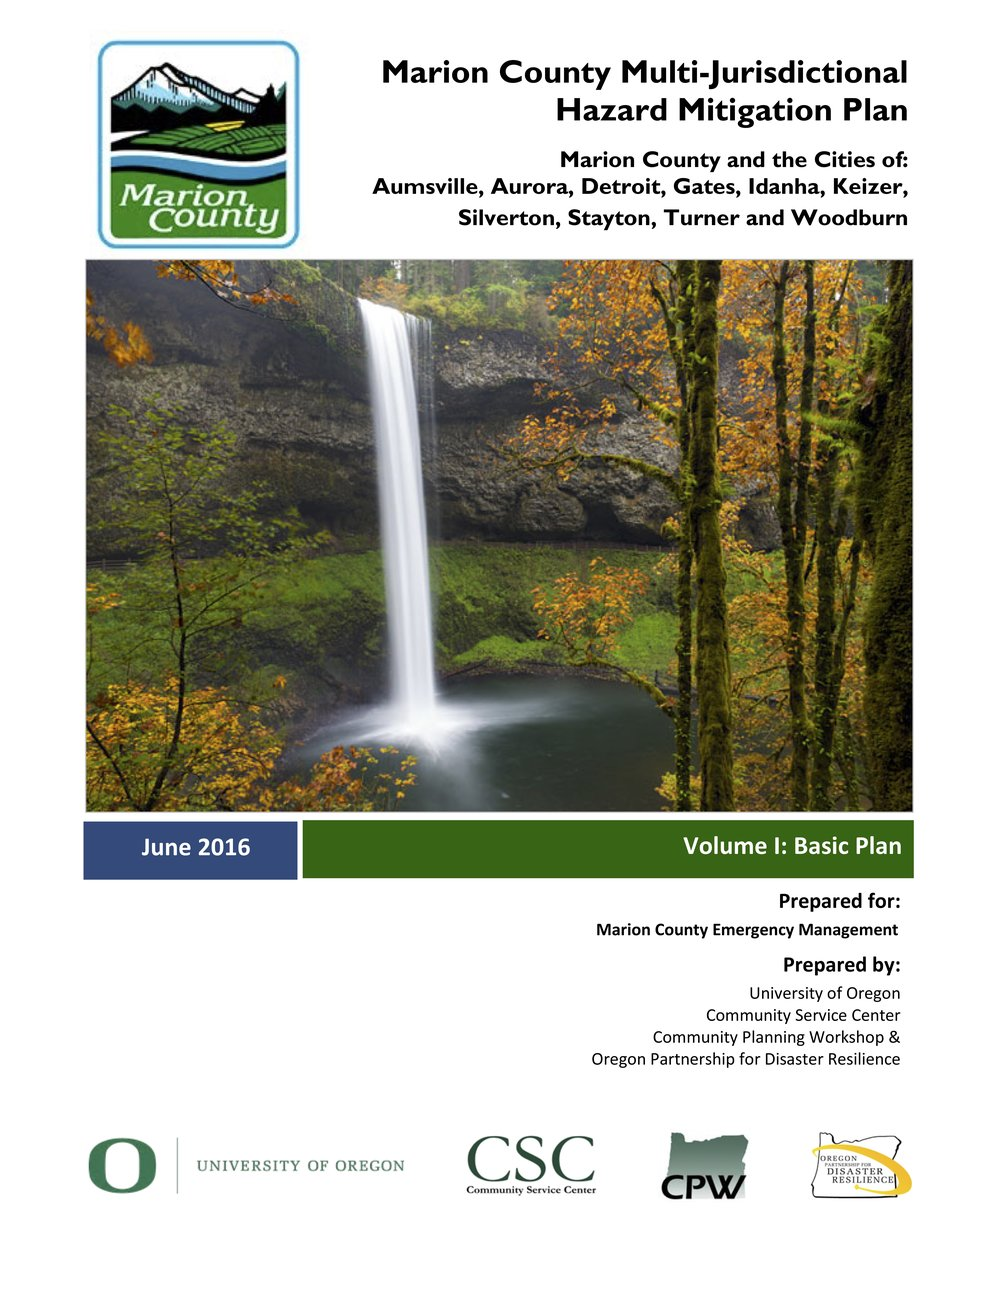 2016 Marion County Natural Hazard Mitigation Plan Update - University of Oregon Community Service Center & Community Planning Workshop, Project Manager